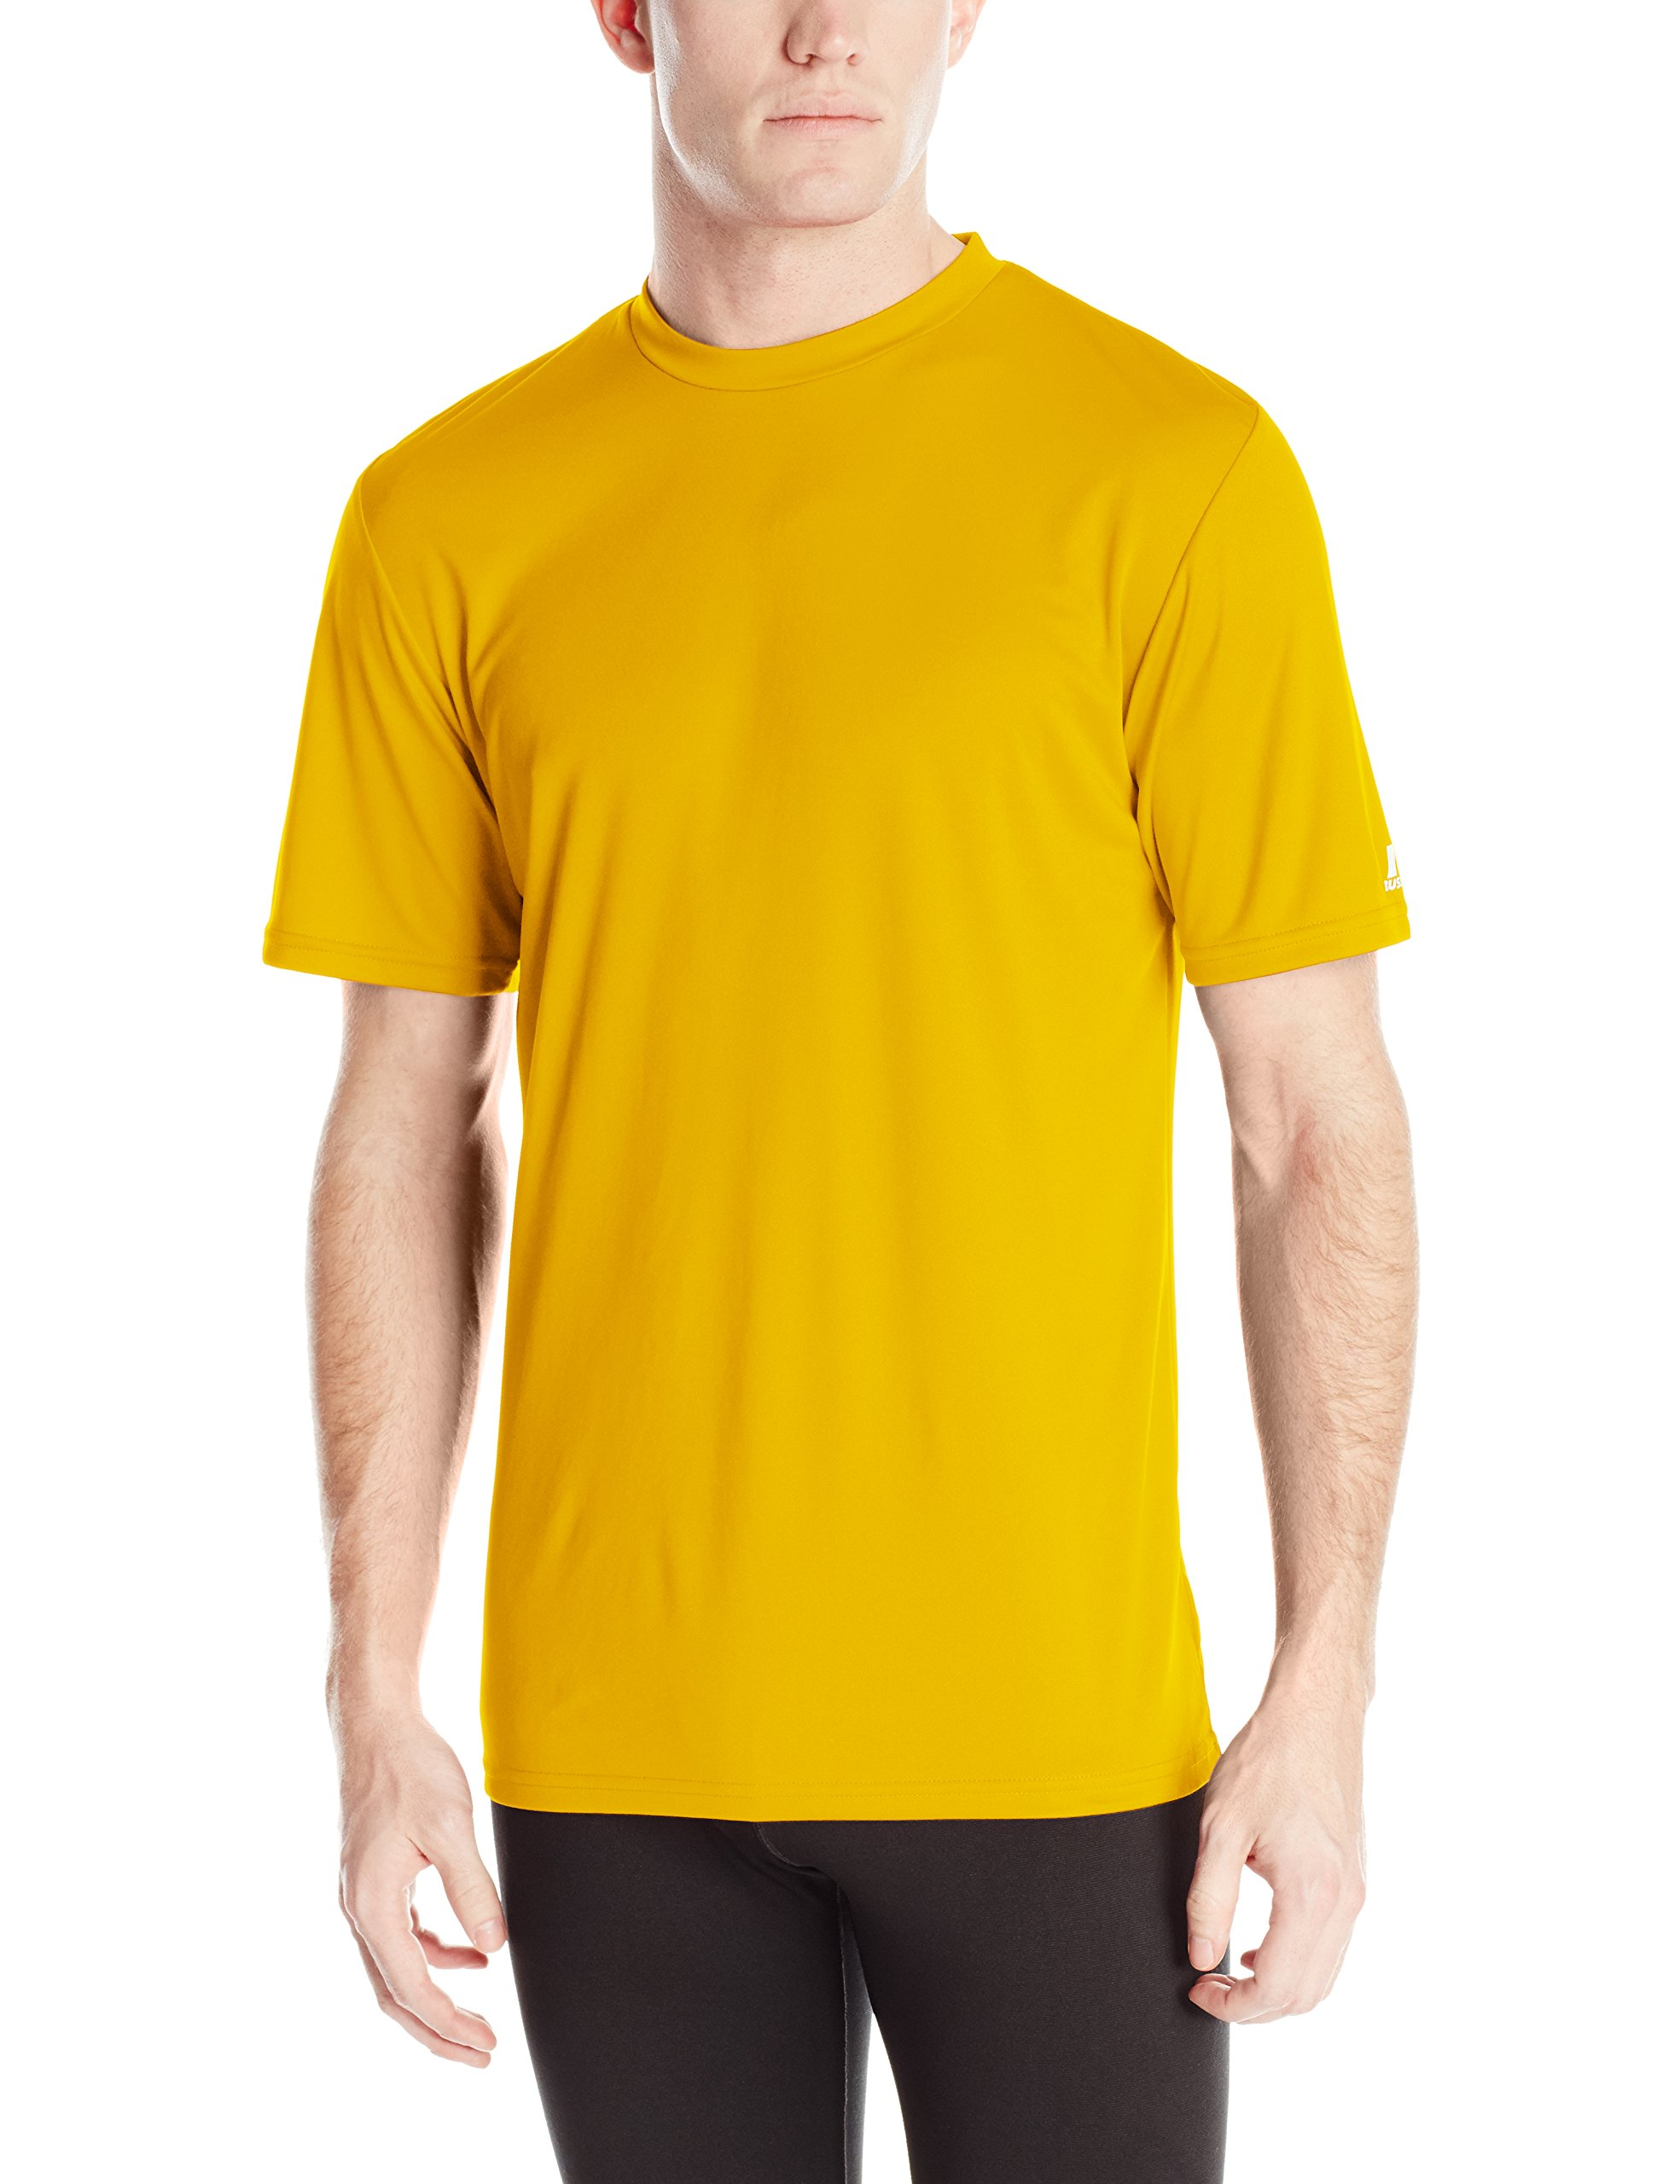 Russell Athletic Men's Performance T-Shirt, Gold, 4X-Large by Russell Athletic